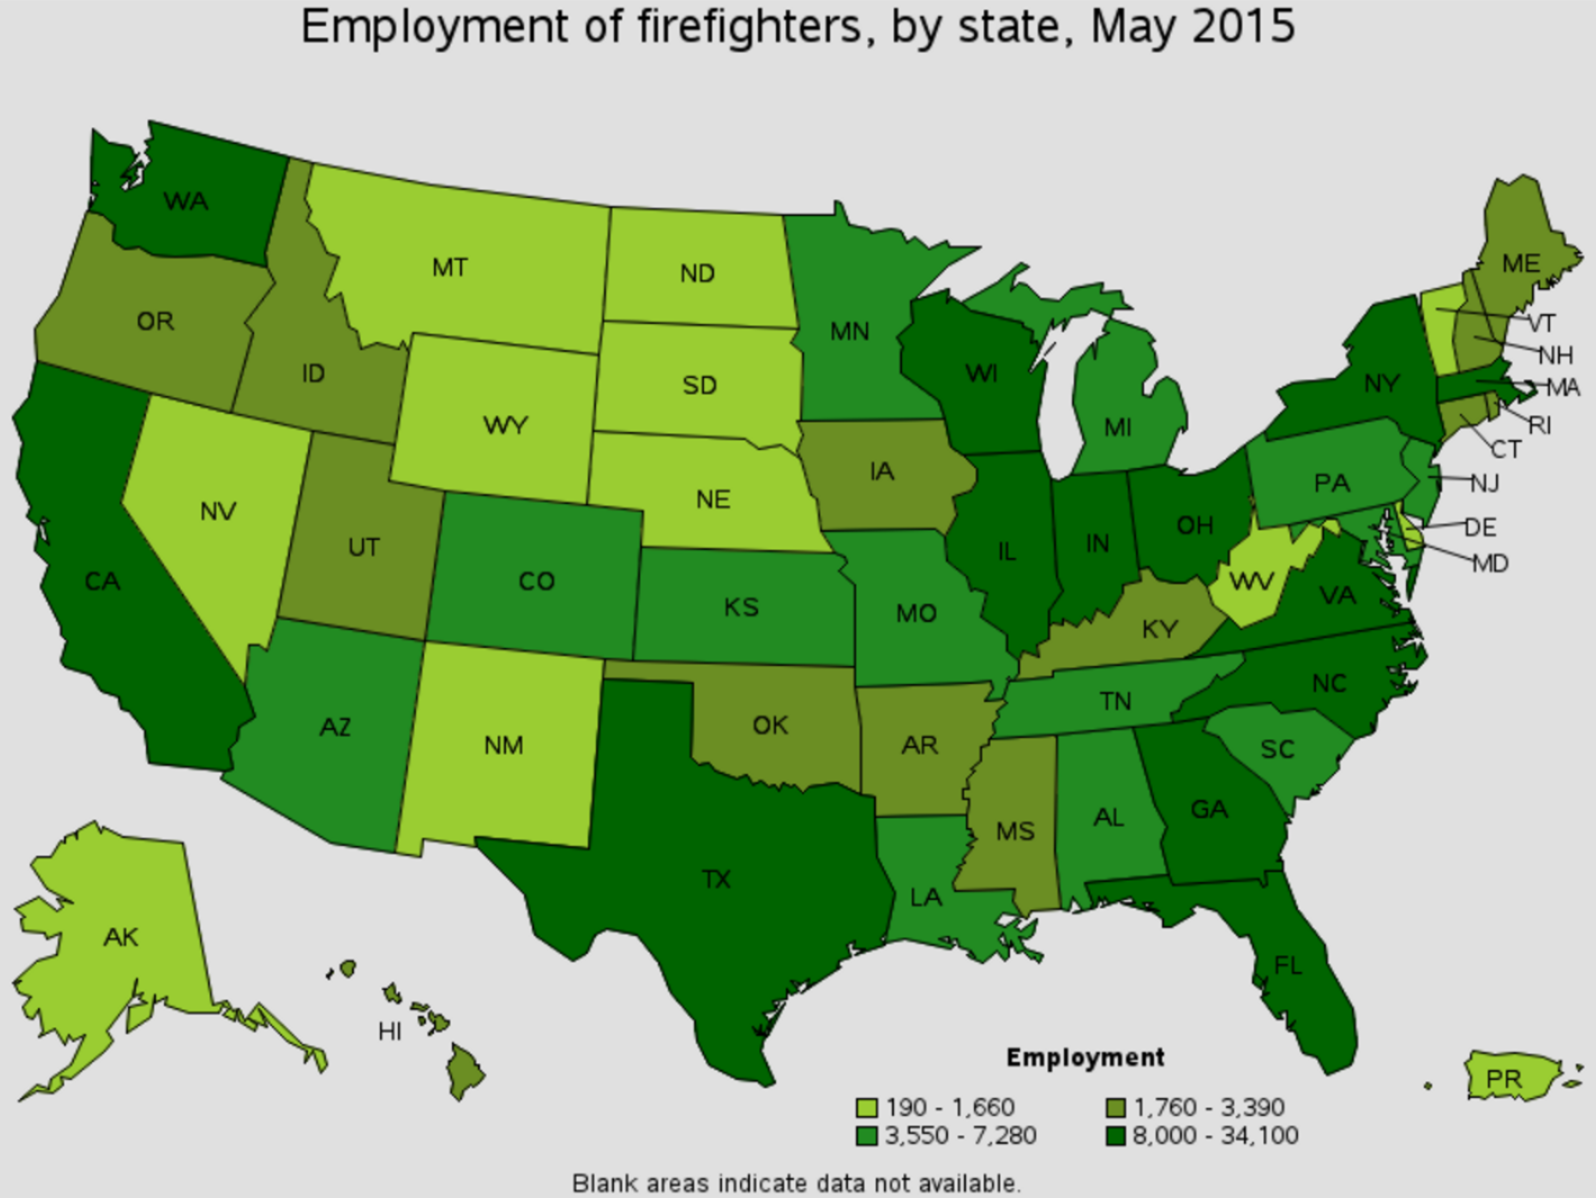 firefighter job outlook by state York Alabama